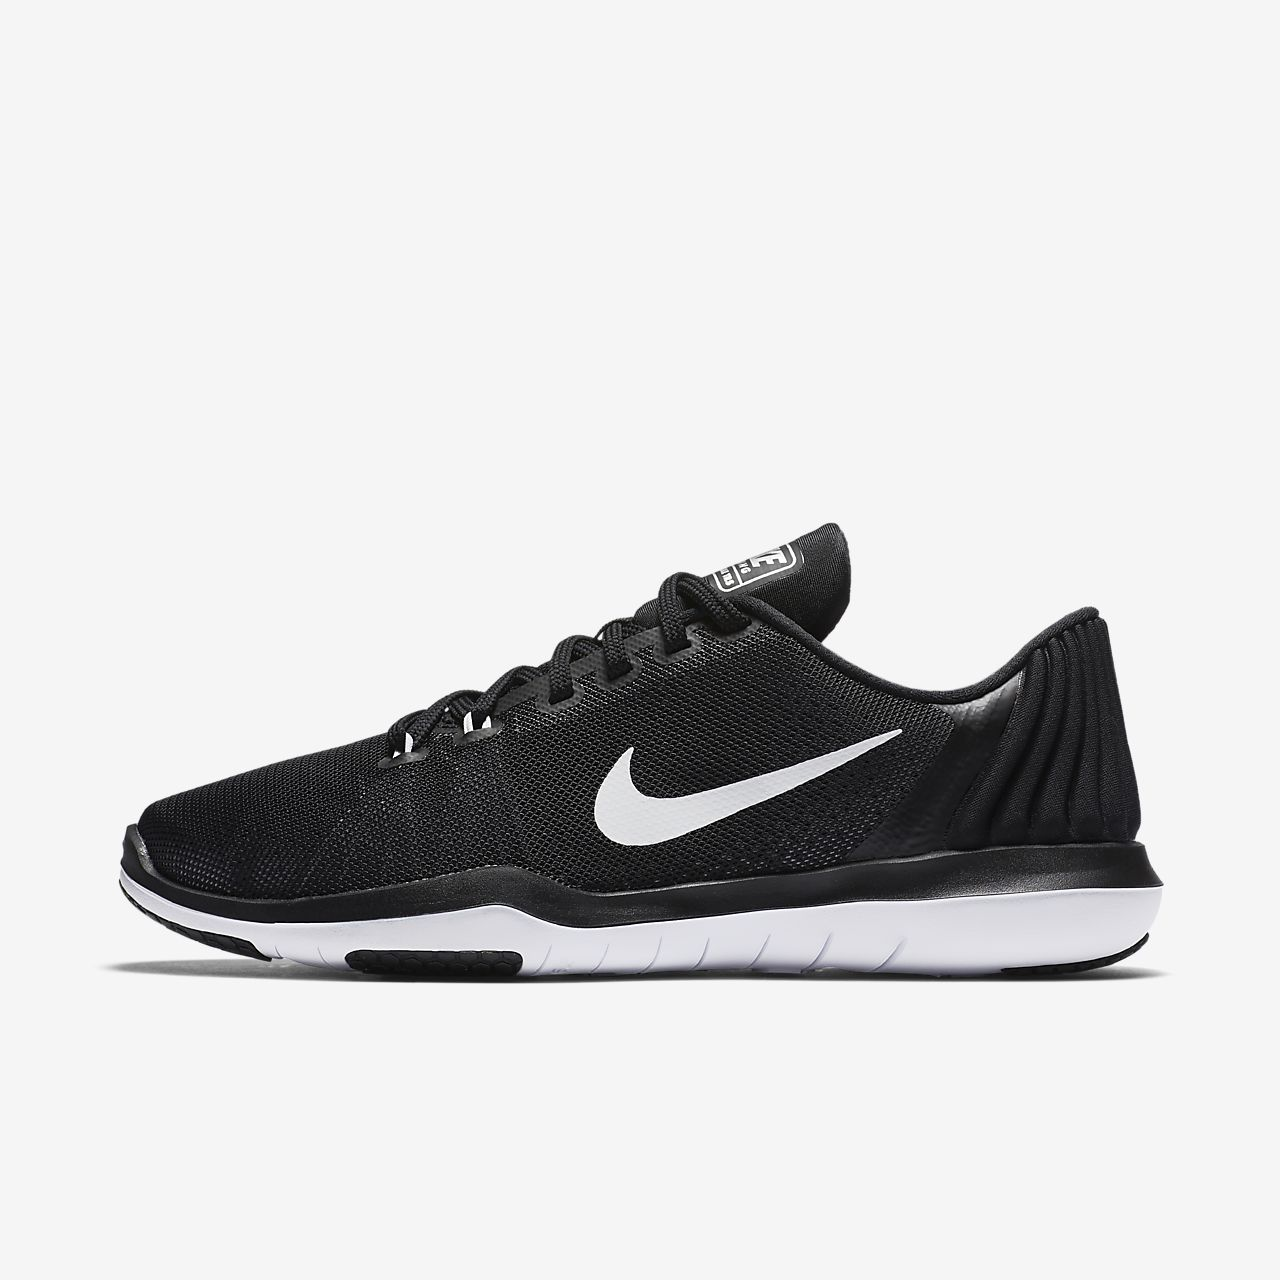 Low Resolution Nike Flex Supreme TR 5 Women's Training Shoe Nike Flex  Supreme TR 5 Women's Training Shoe